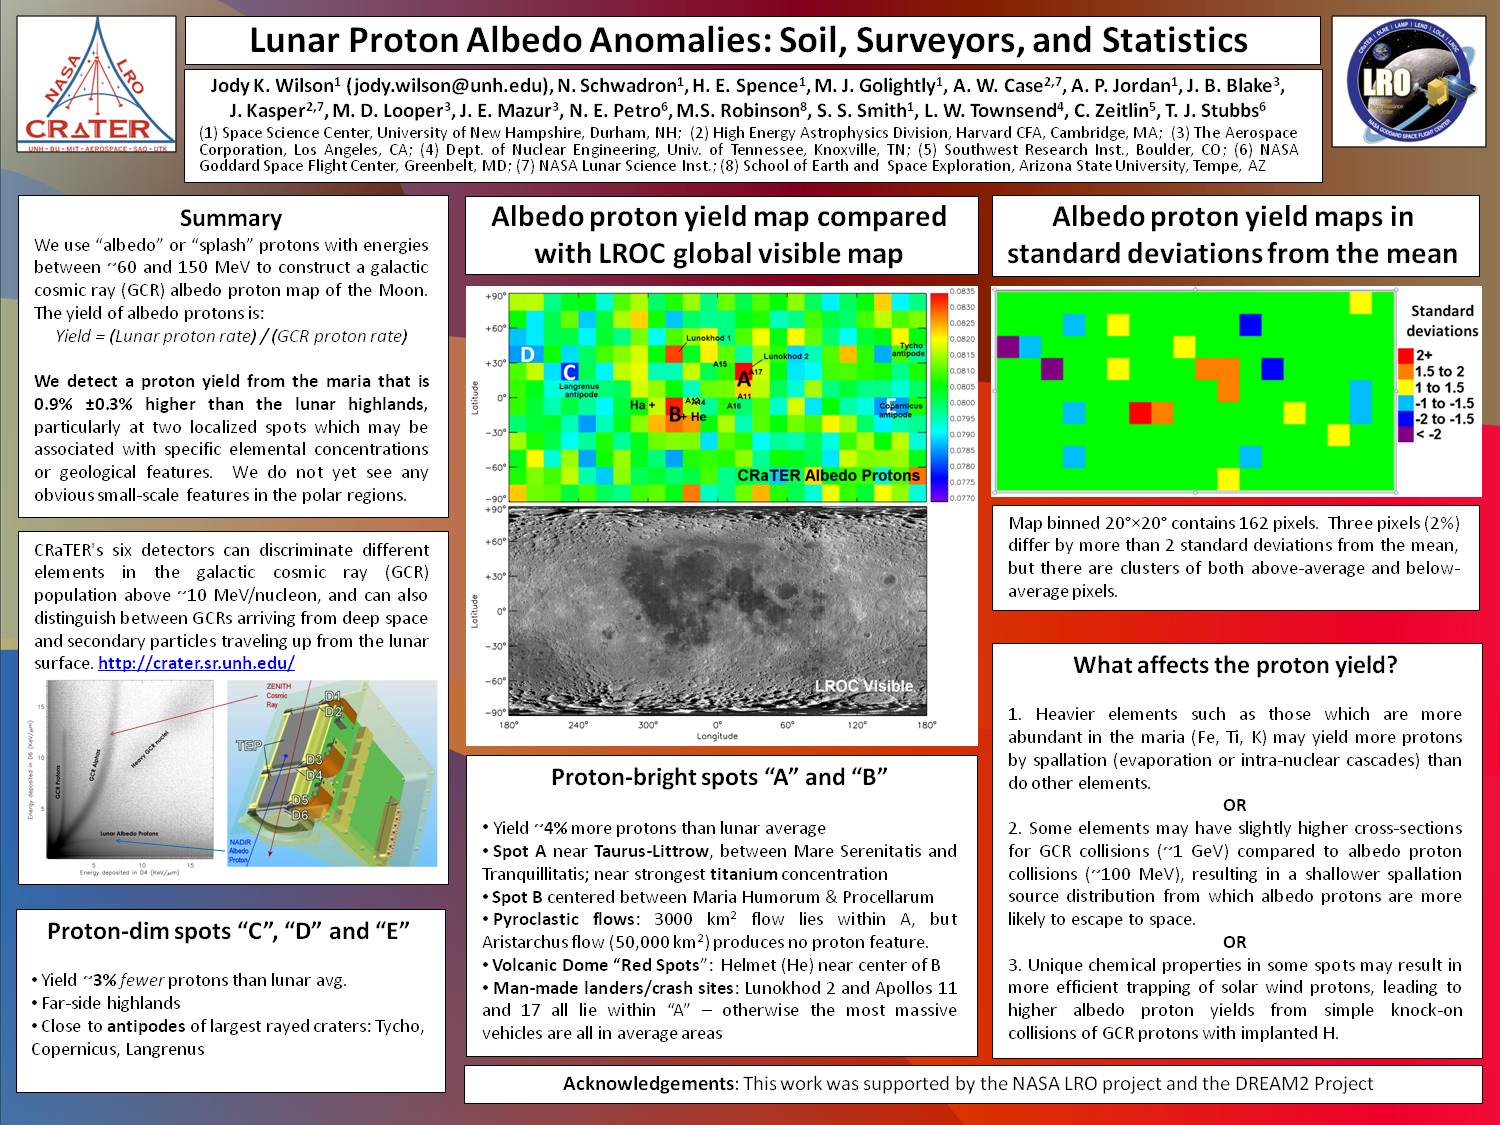 Lunar Proton Albedo Anomalies: Soil, Surveyors, And Statistics by jkwilson